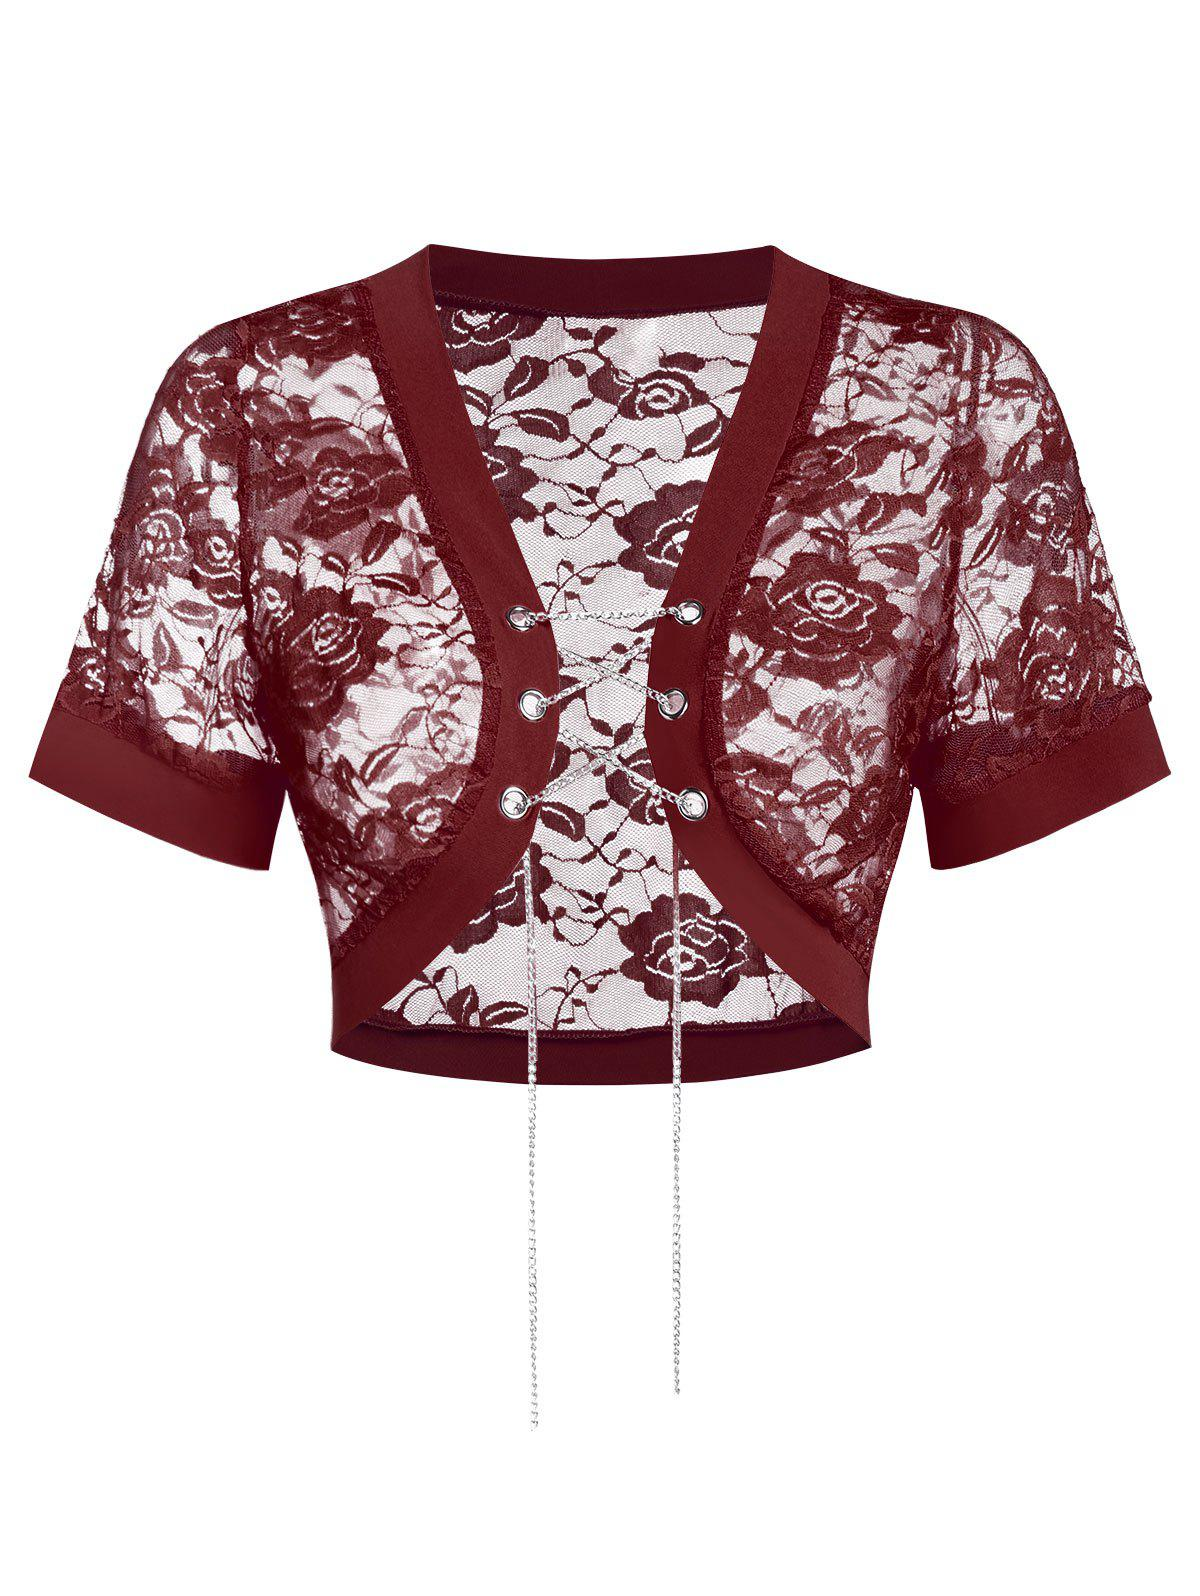 Sheer Lace Crop Solid Top - RED WINE 2XL